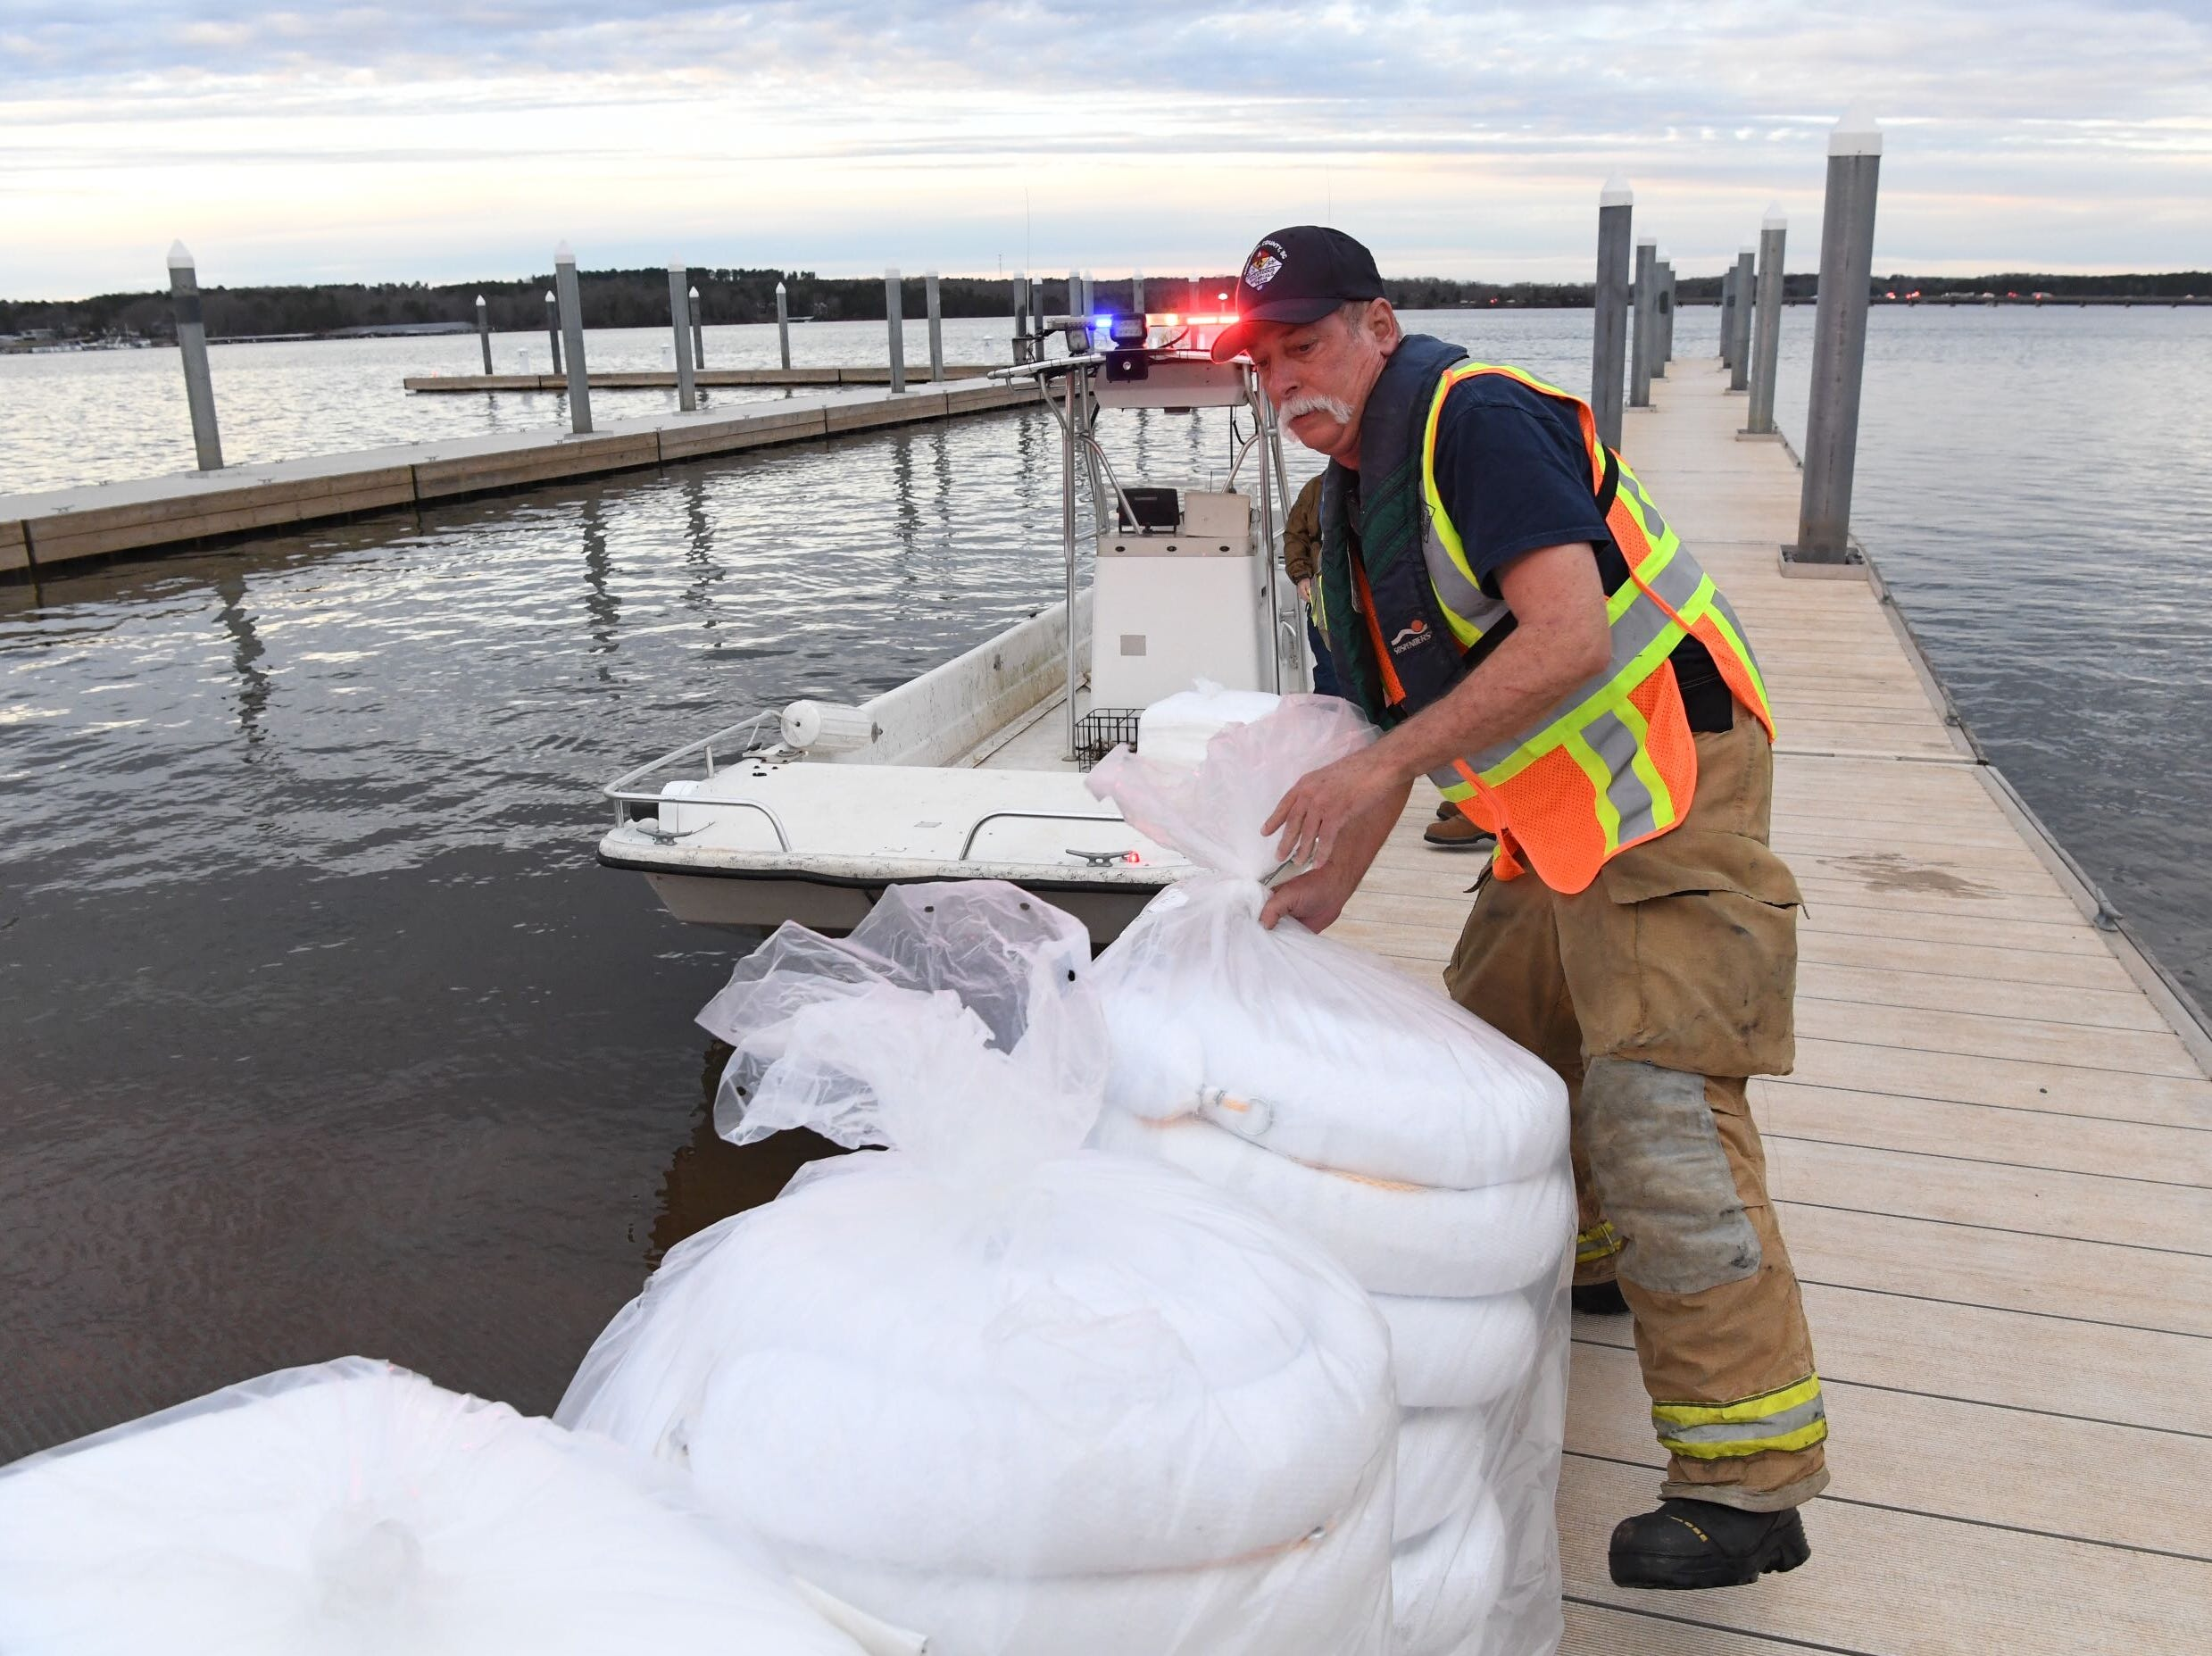 JT Tingen of Anderson County HAZMAT loads a boat with fuel absorbing pads at Green Pond Marina near the state highway 24 double bridges in Anderson Monday, Feb. 18, 2019.